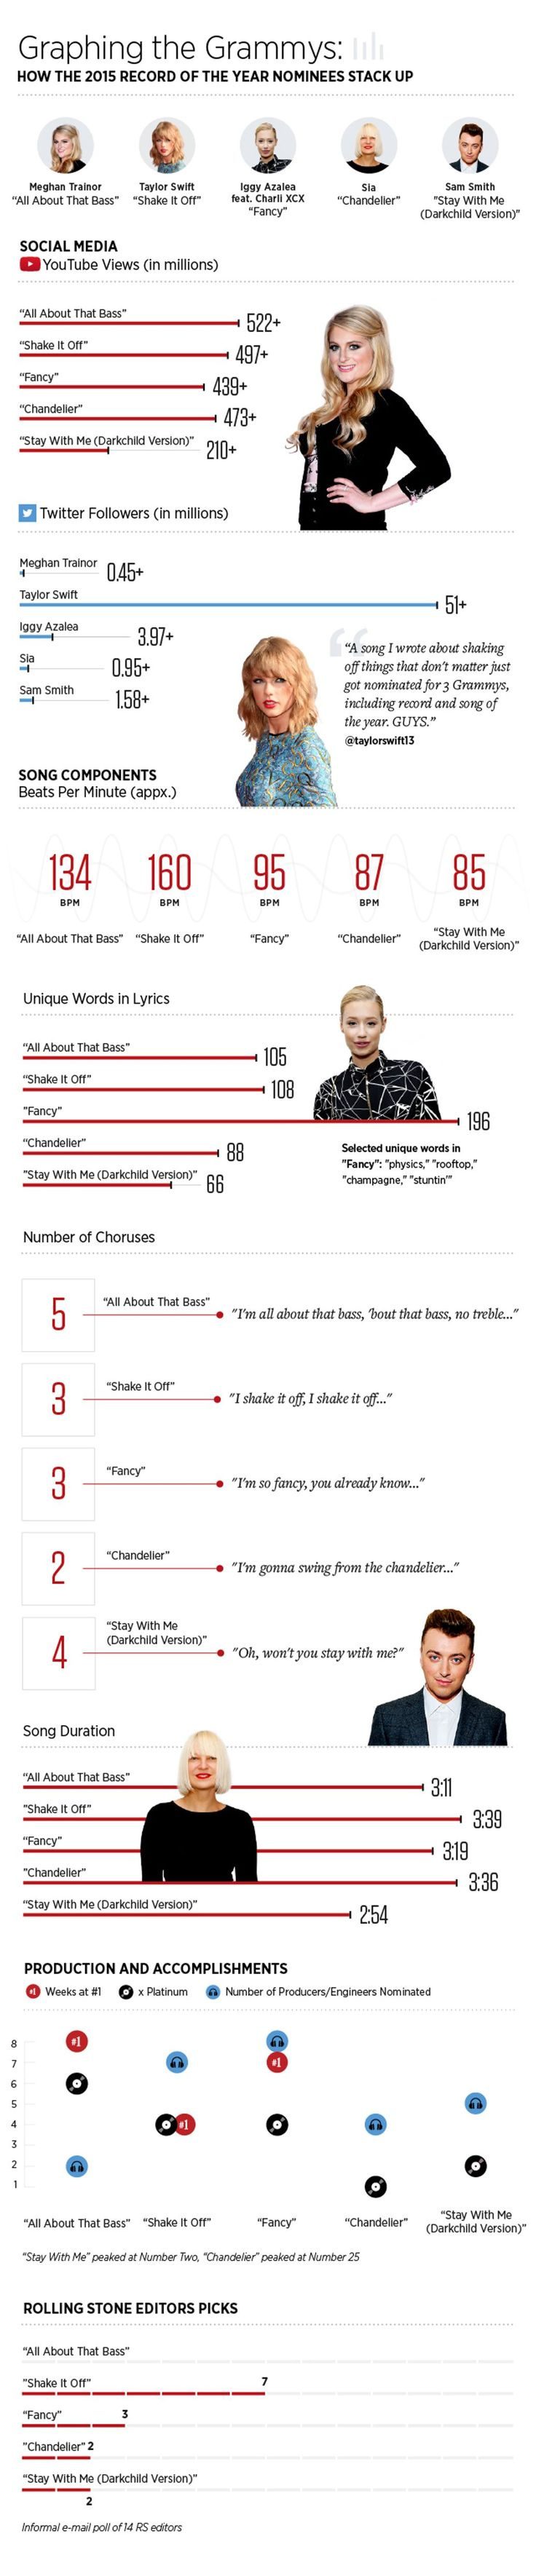 2015 Grammy Nominees analyzed by social media, beats per minute, # of words in the lyrics, #of engineers, etc. Interesting points to look for.